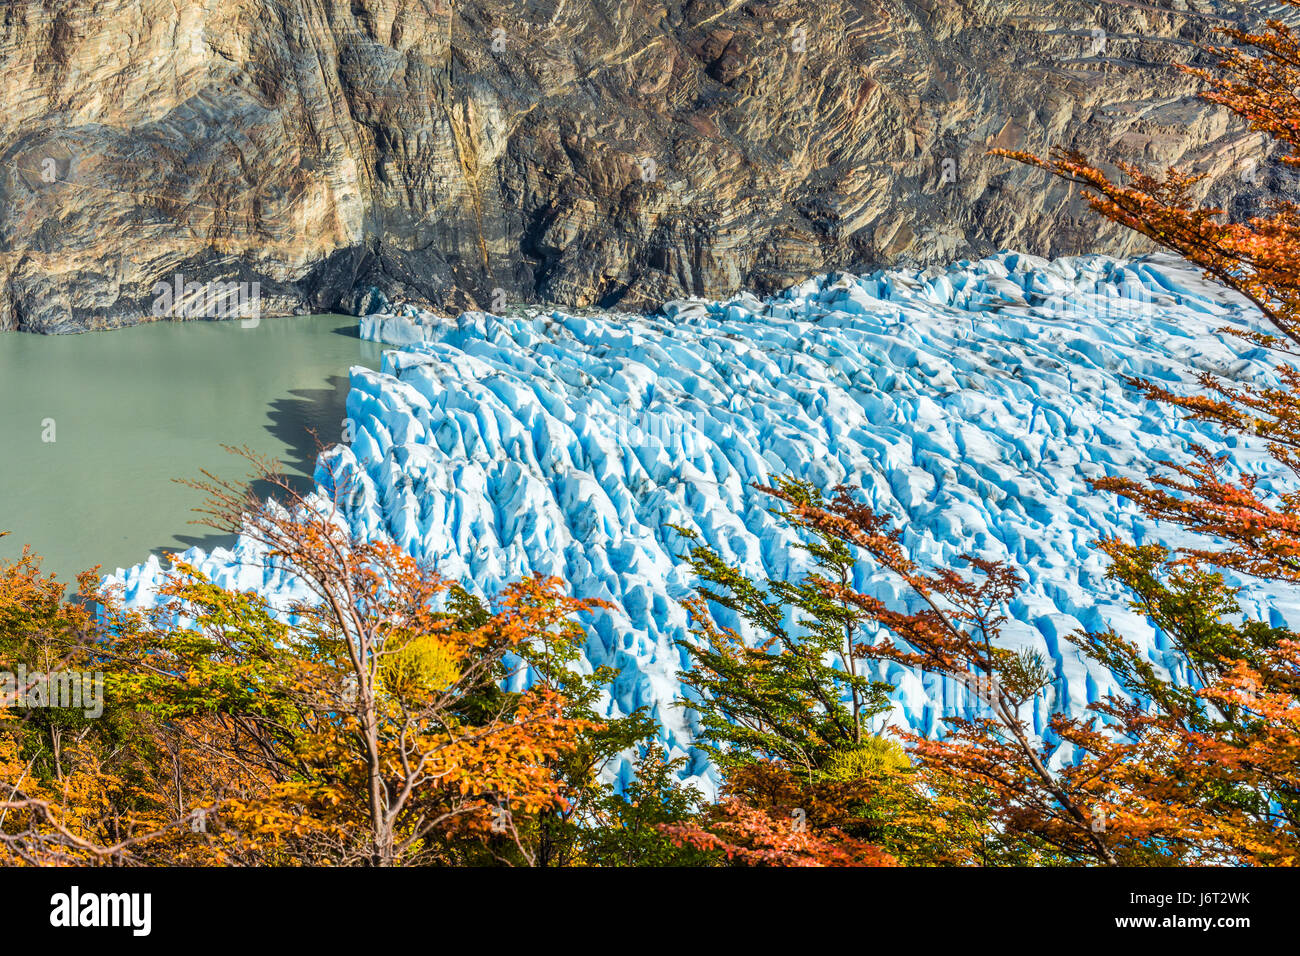 Glacier Grey,Patagonie, Chili - un glacier dans le sud du champ de glace Patagonique, Cordillera del Paine Photo Stock